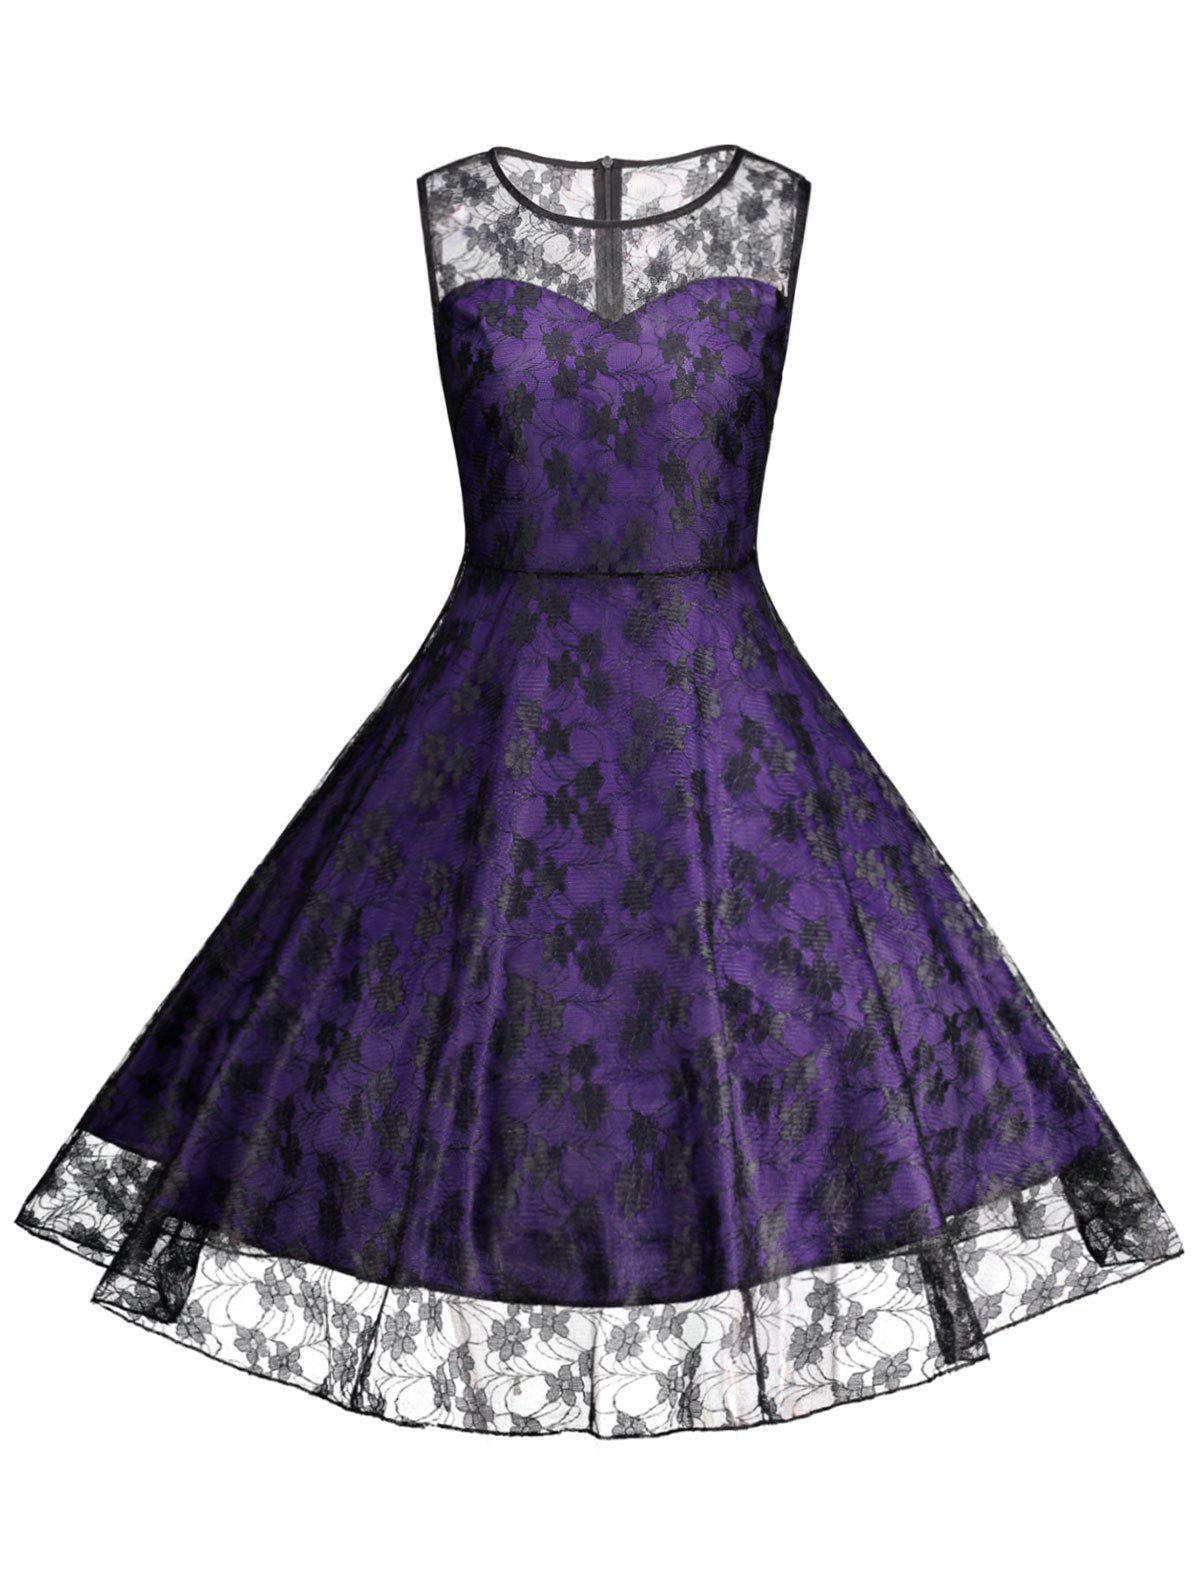 Plus Size Lace Cocktail Formal Party DressWOMEN<br><br>Size: 5XL; Color: PURPLE; Style: Vintage; Material: Lace,Polyester; Silhouette: A-Line; Dresses Length: Knee-Length; Neckline: Round Collar; Sleeve Length: Sleeveless; Waist: High Waisted; Embellishment: Lace; Pattern Type: Floral; With Belt: No; Season: Summer; Weight: 0.2400kg; Package Contents: 1 x Dress;